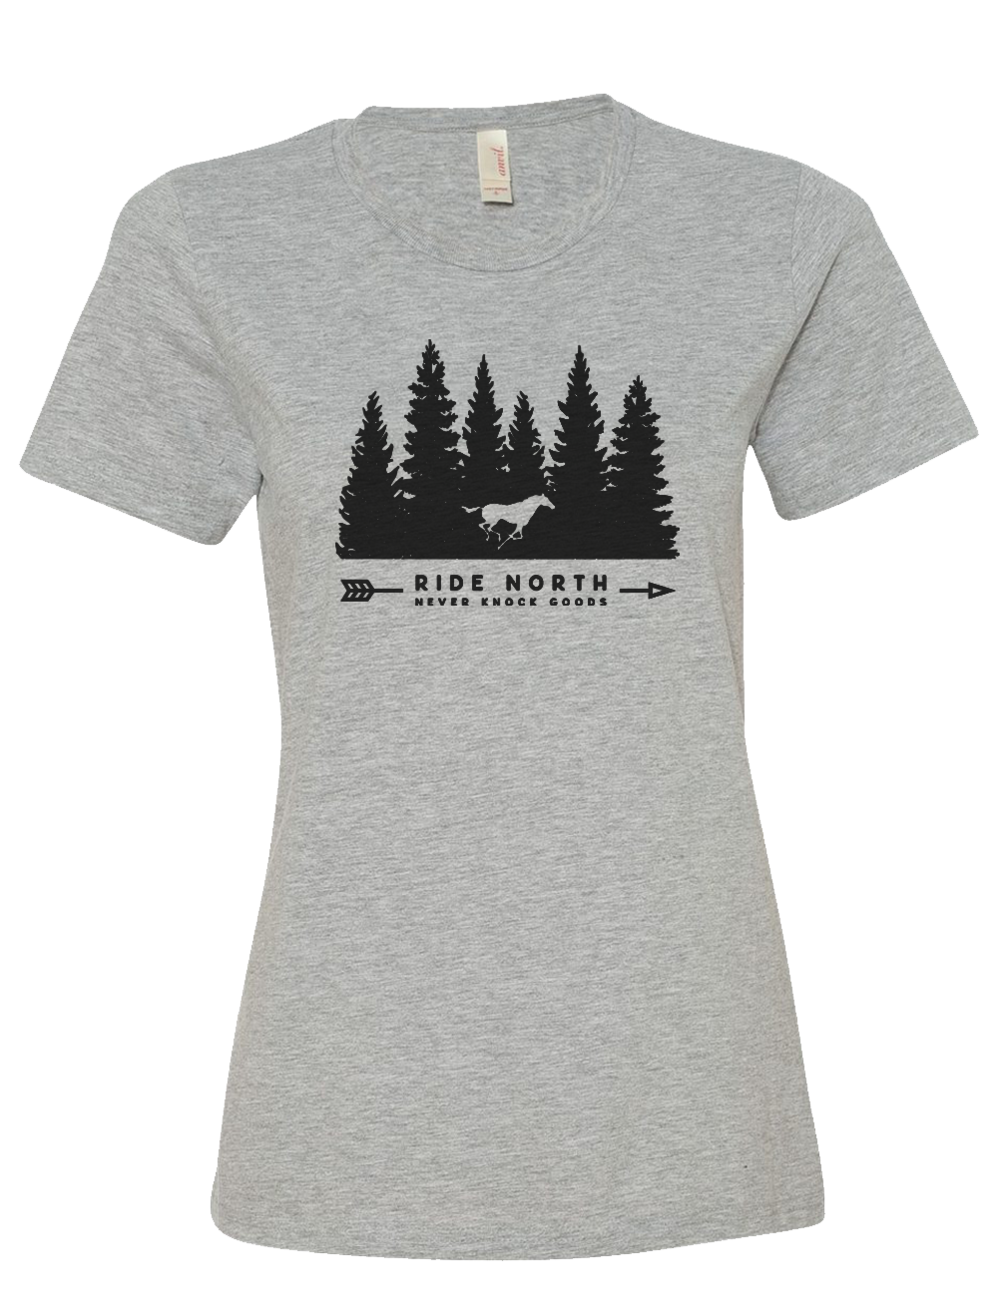 Ride-North  Heather Grey 880- NK-Tees.png